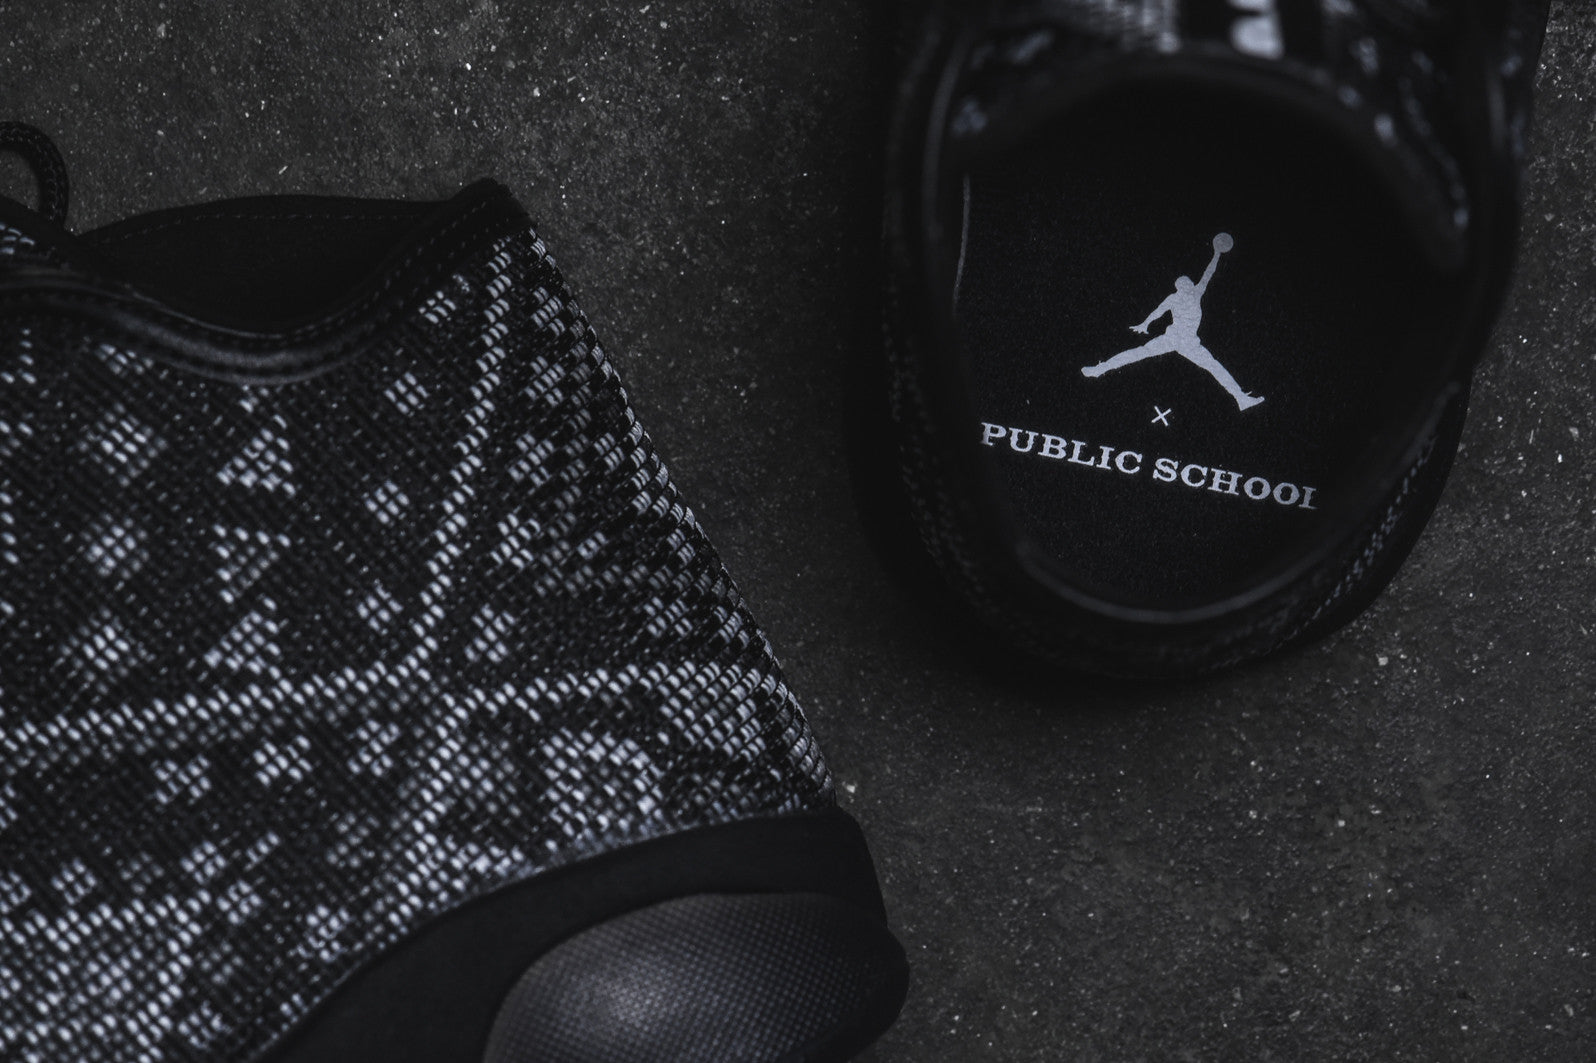 Nike Air Jordan x Public School Horizon PRM